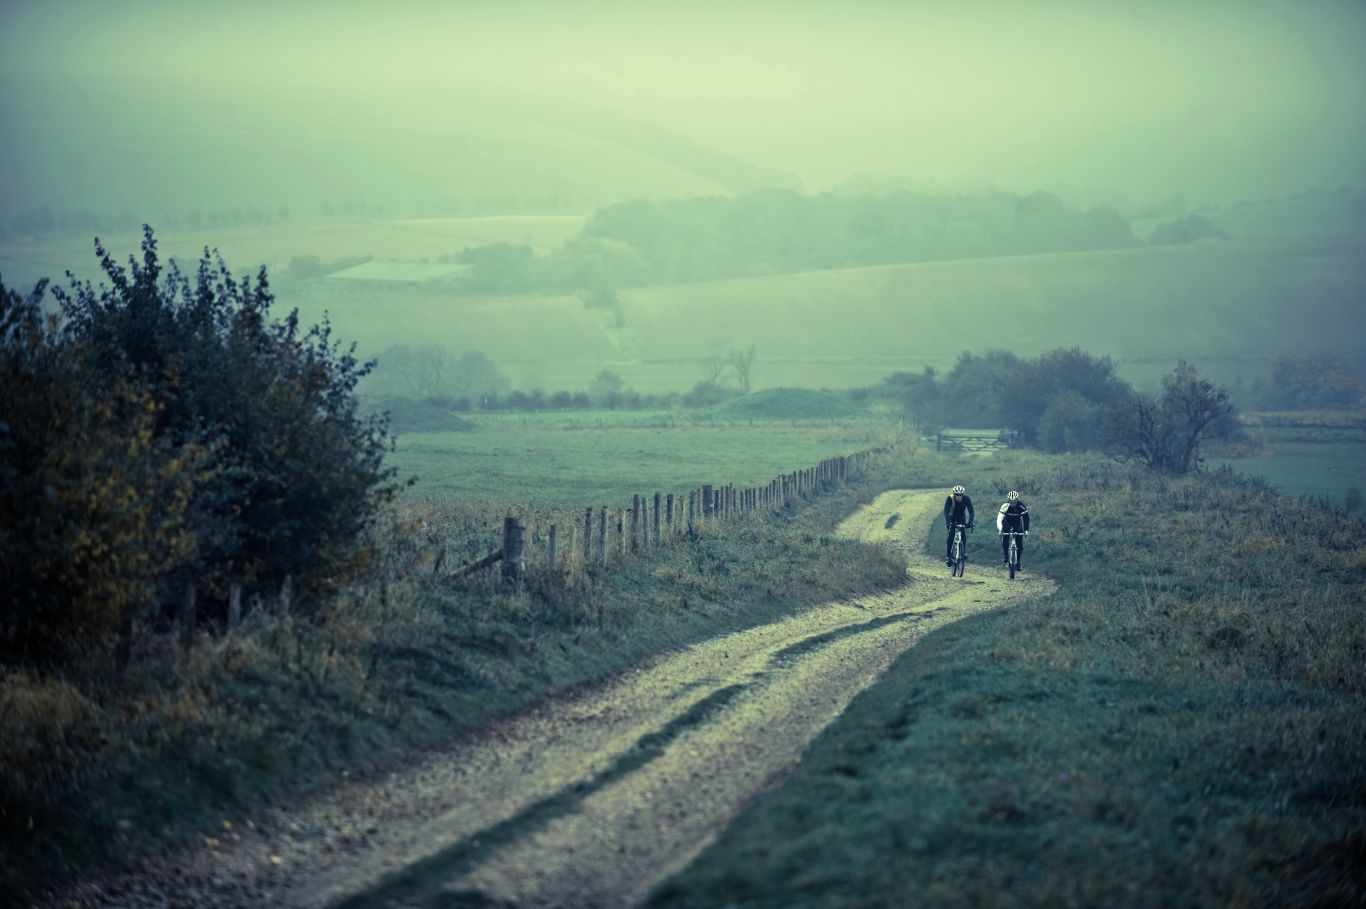 Long shot of two cyclists riding on the Ridgeway, England's oldest road